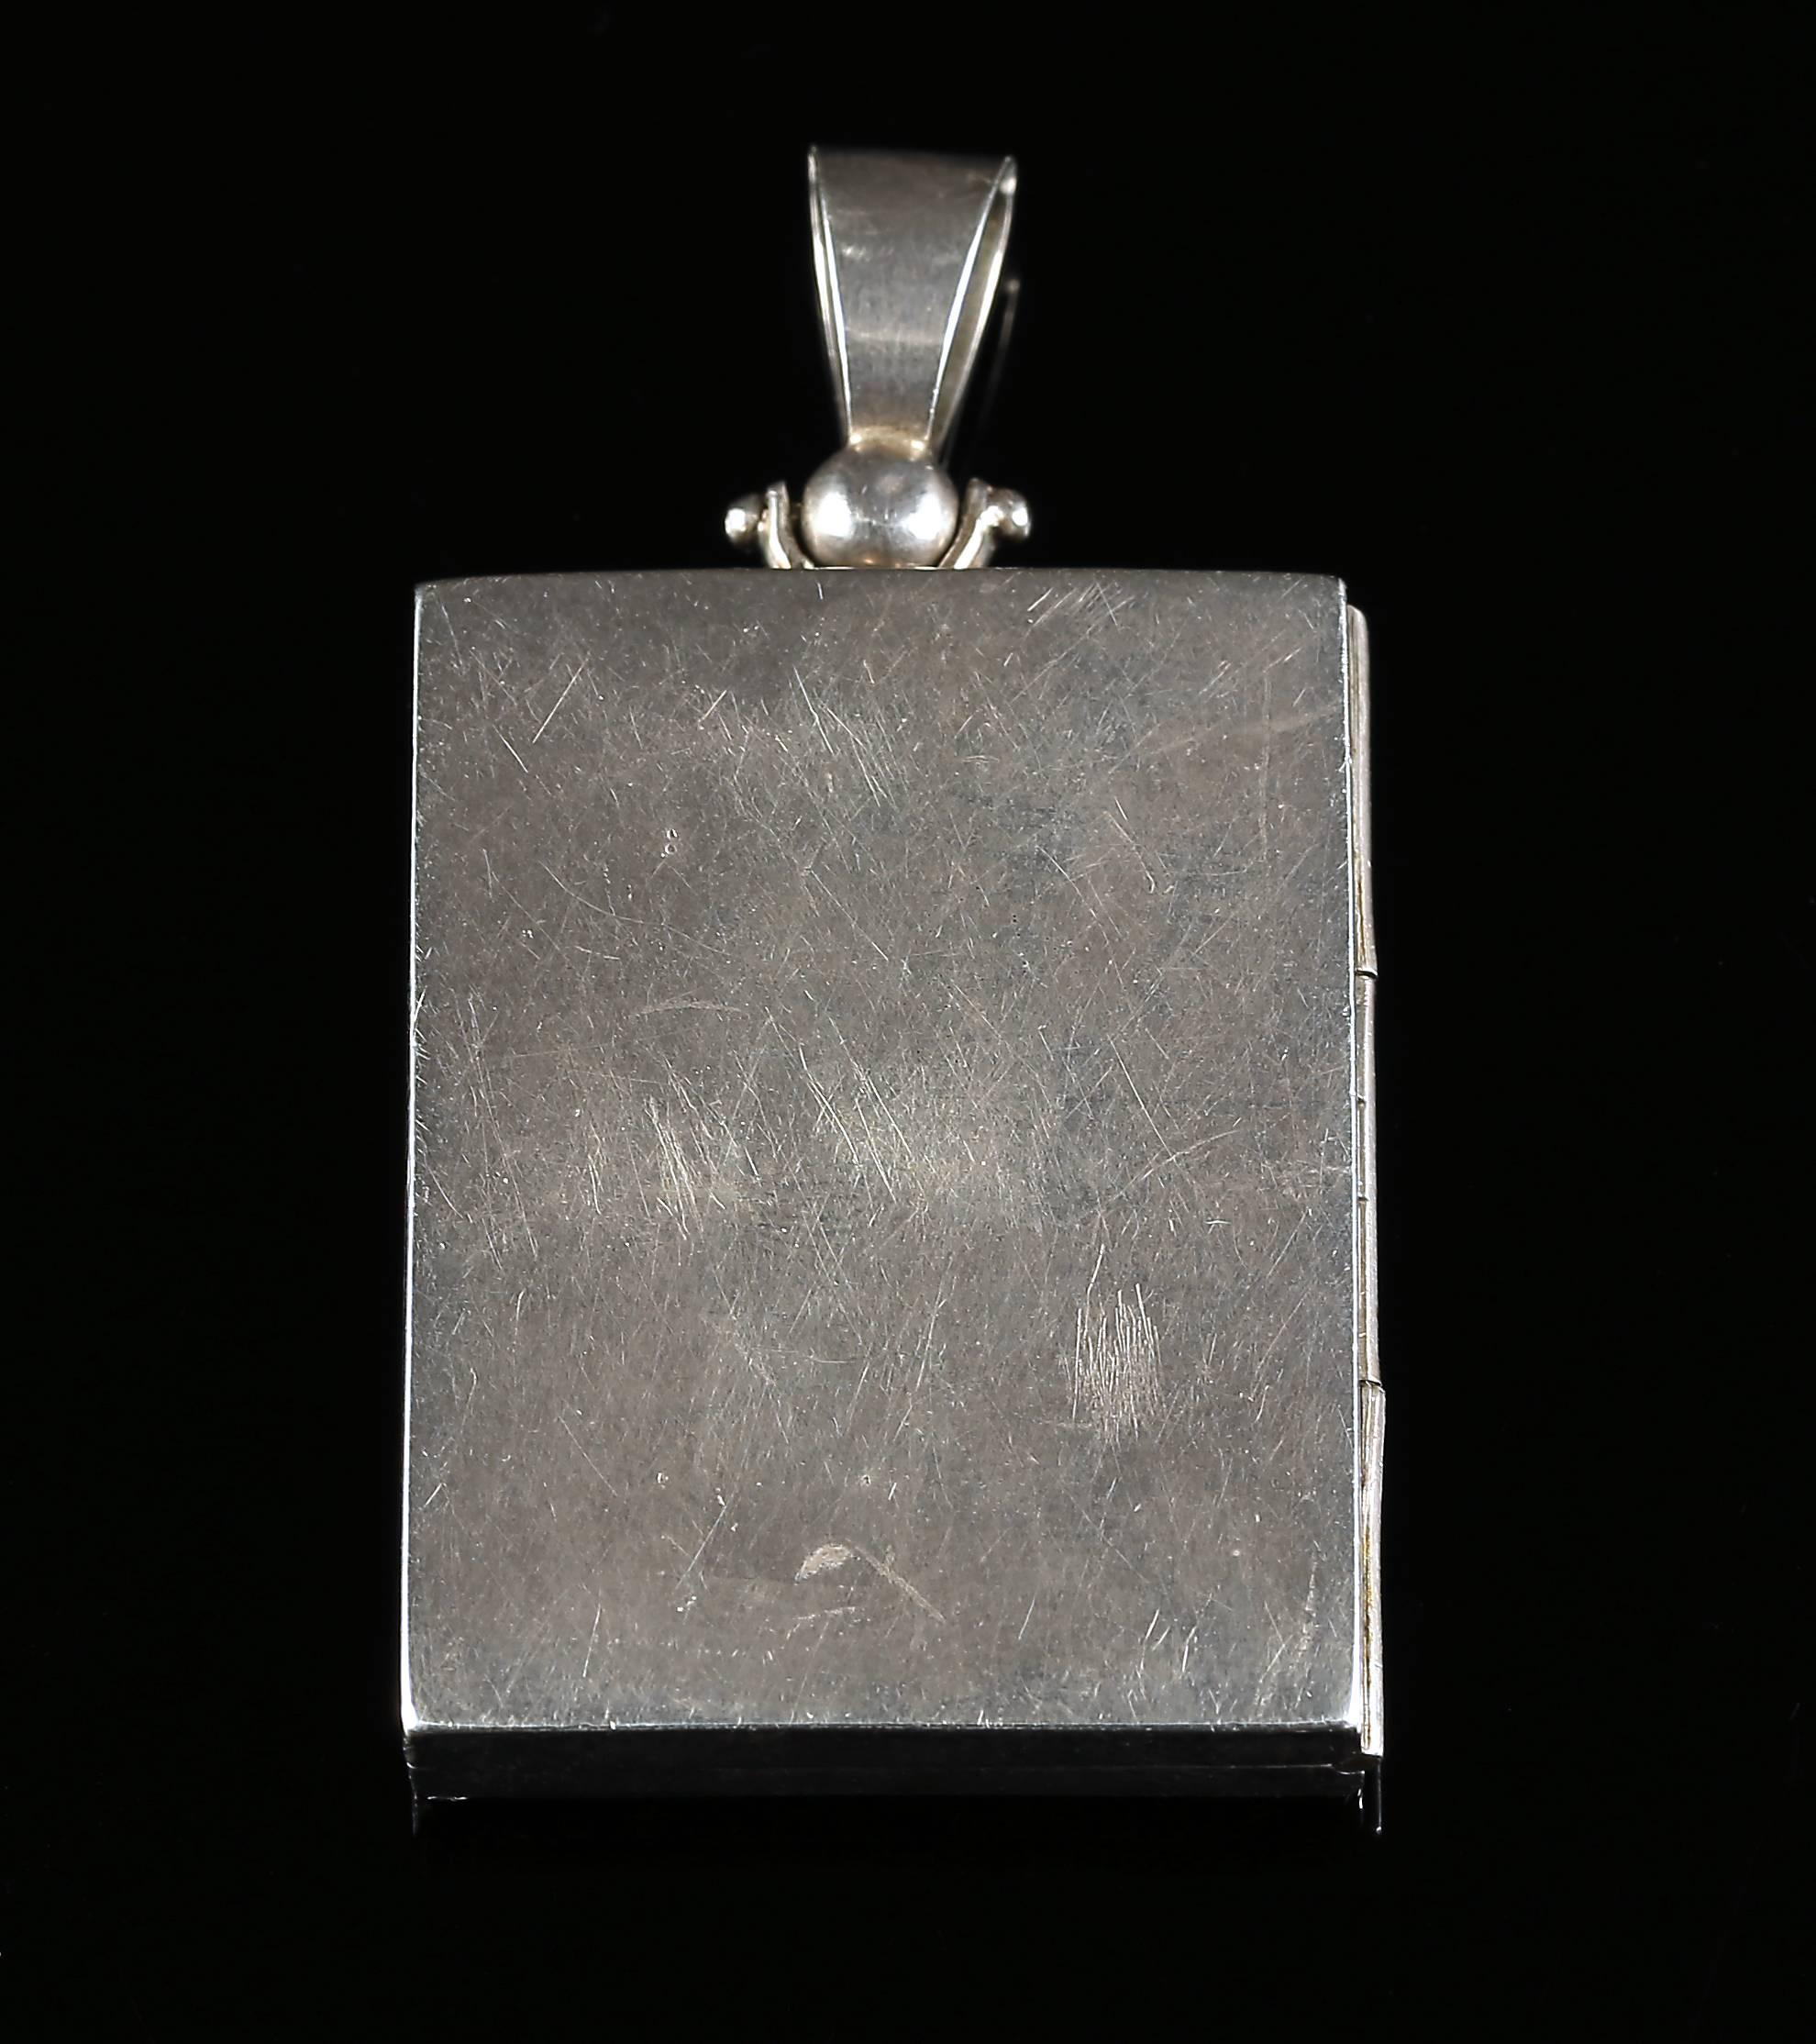 pendant jewelry silver sterling glass locket keepsake square lockets necklace pin swivel